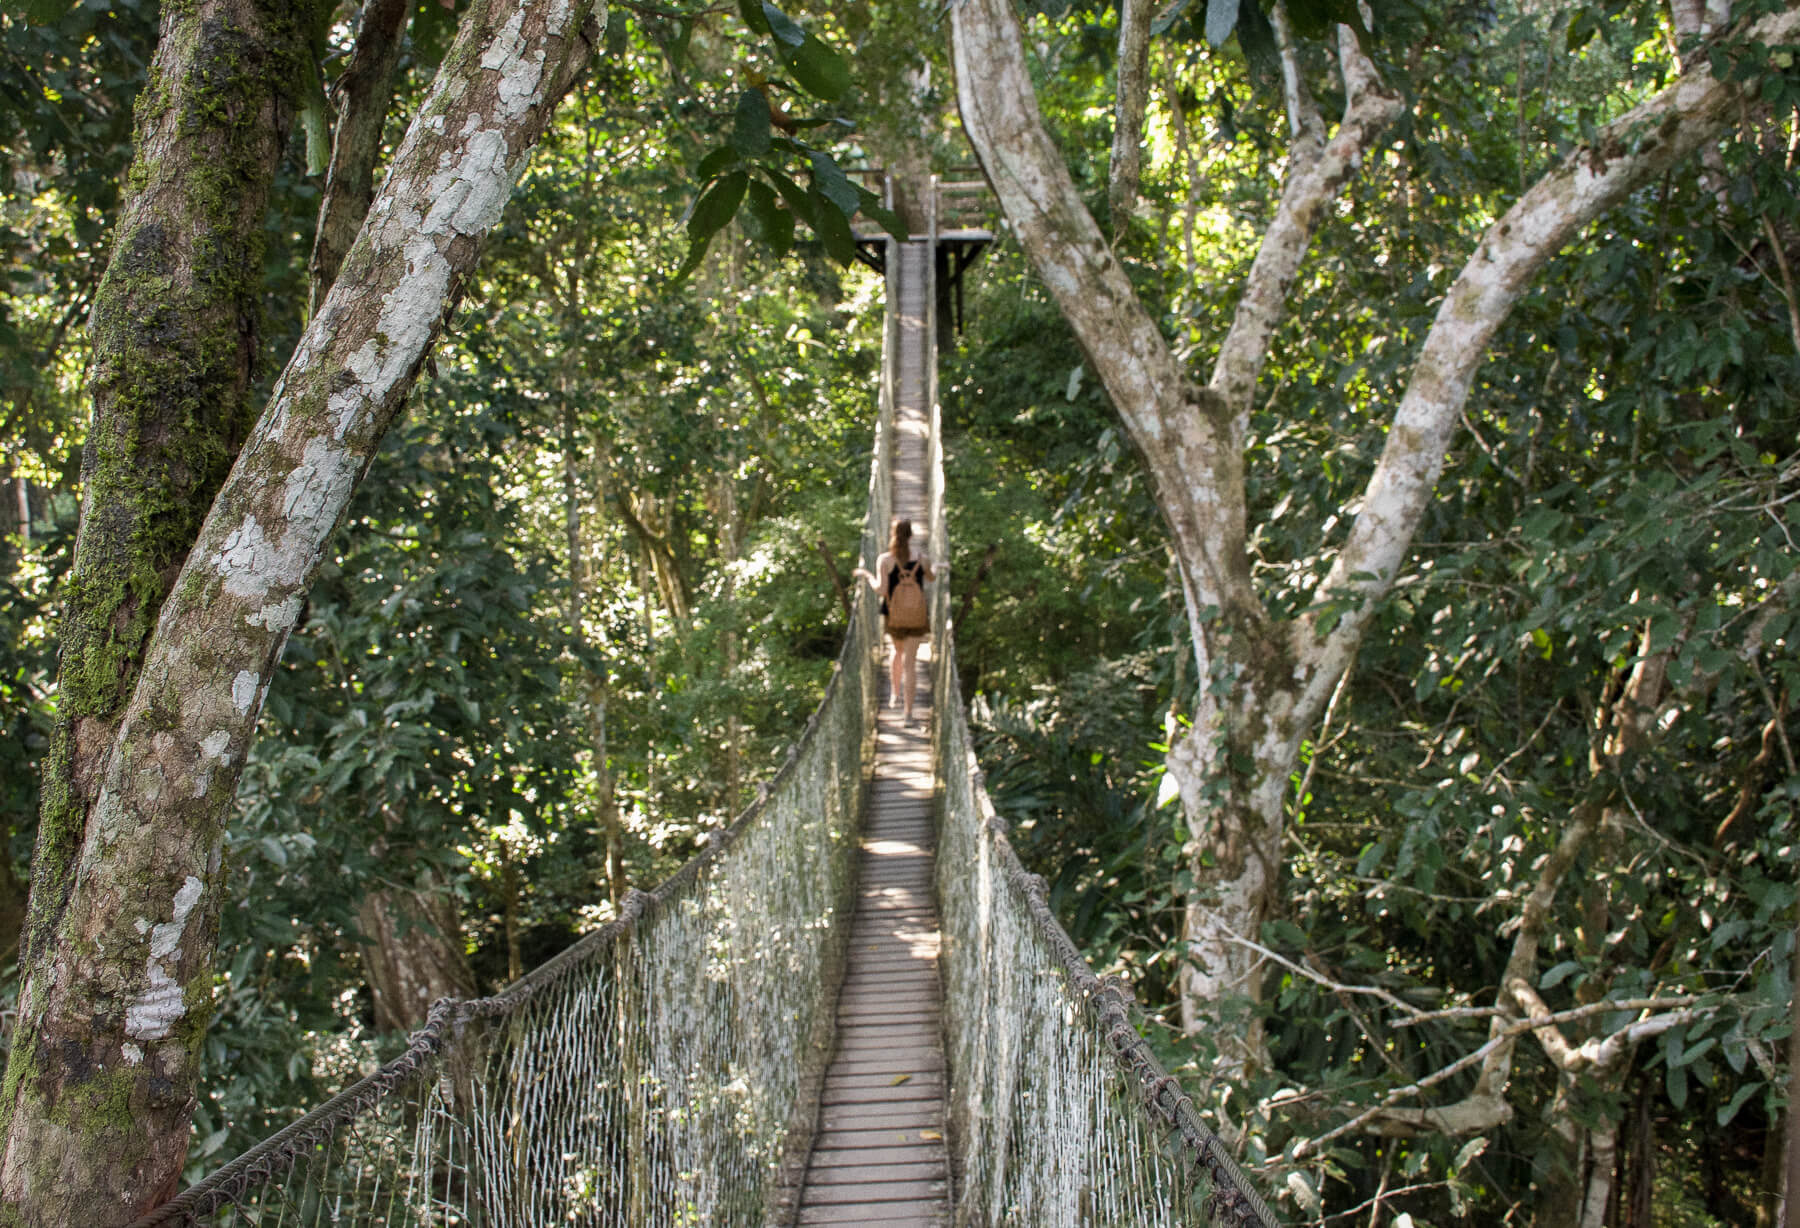 Girl walking across a rope bridge 10 stories high in the trees of the Amazon